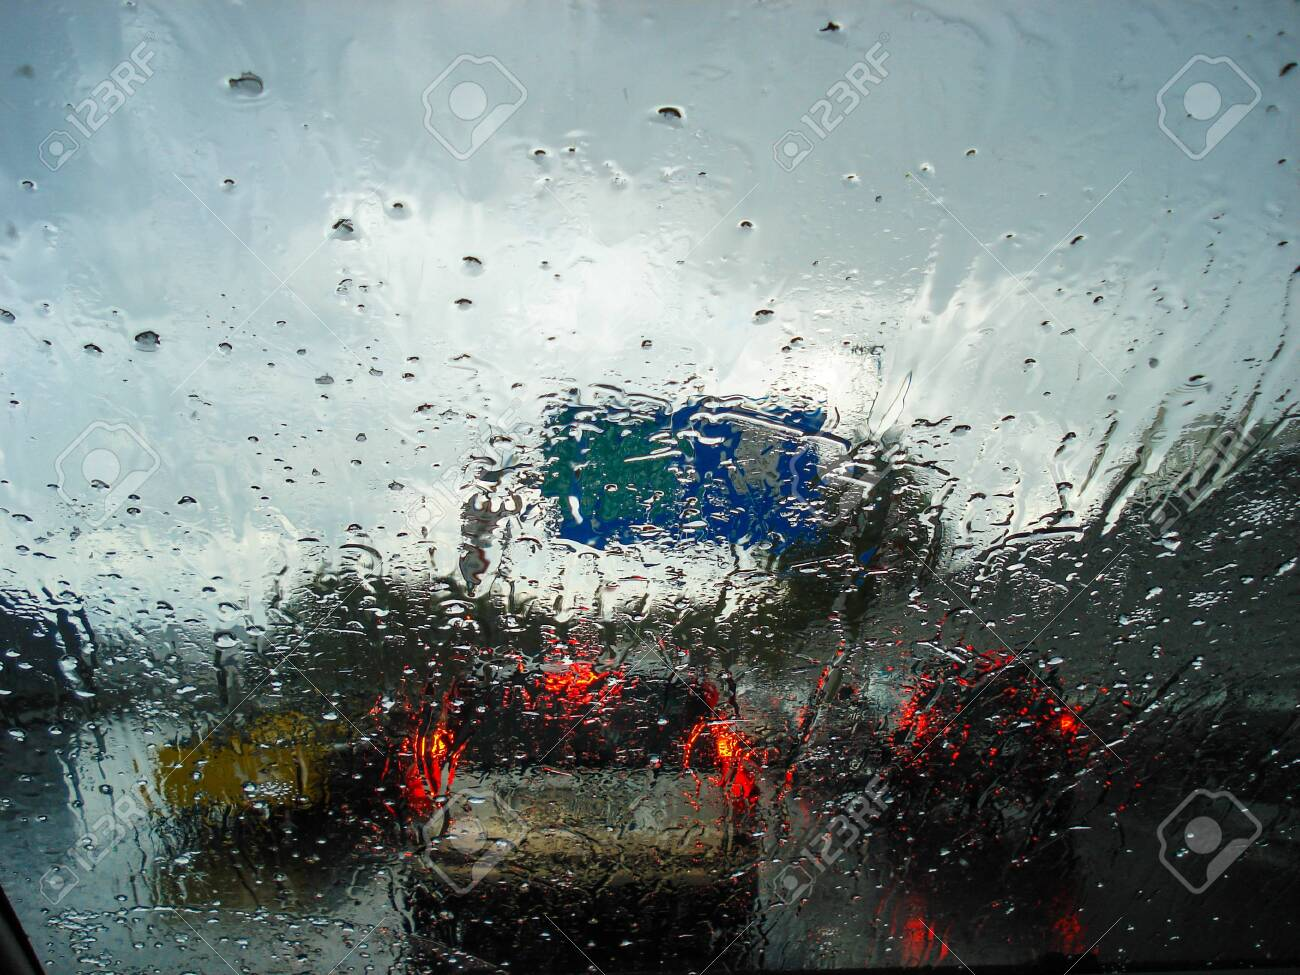 View of road and traffic jams on a rainy day from inside a car with the wet car glass - 125840425